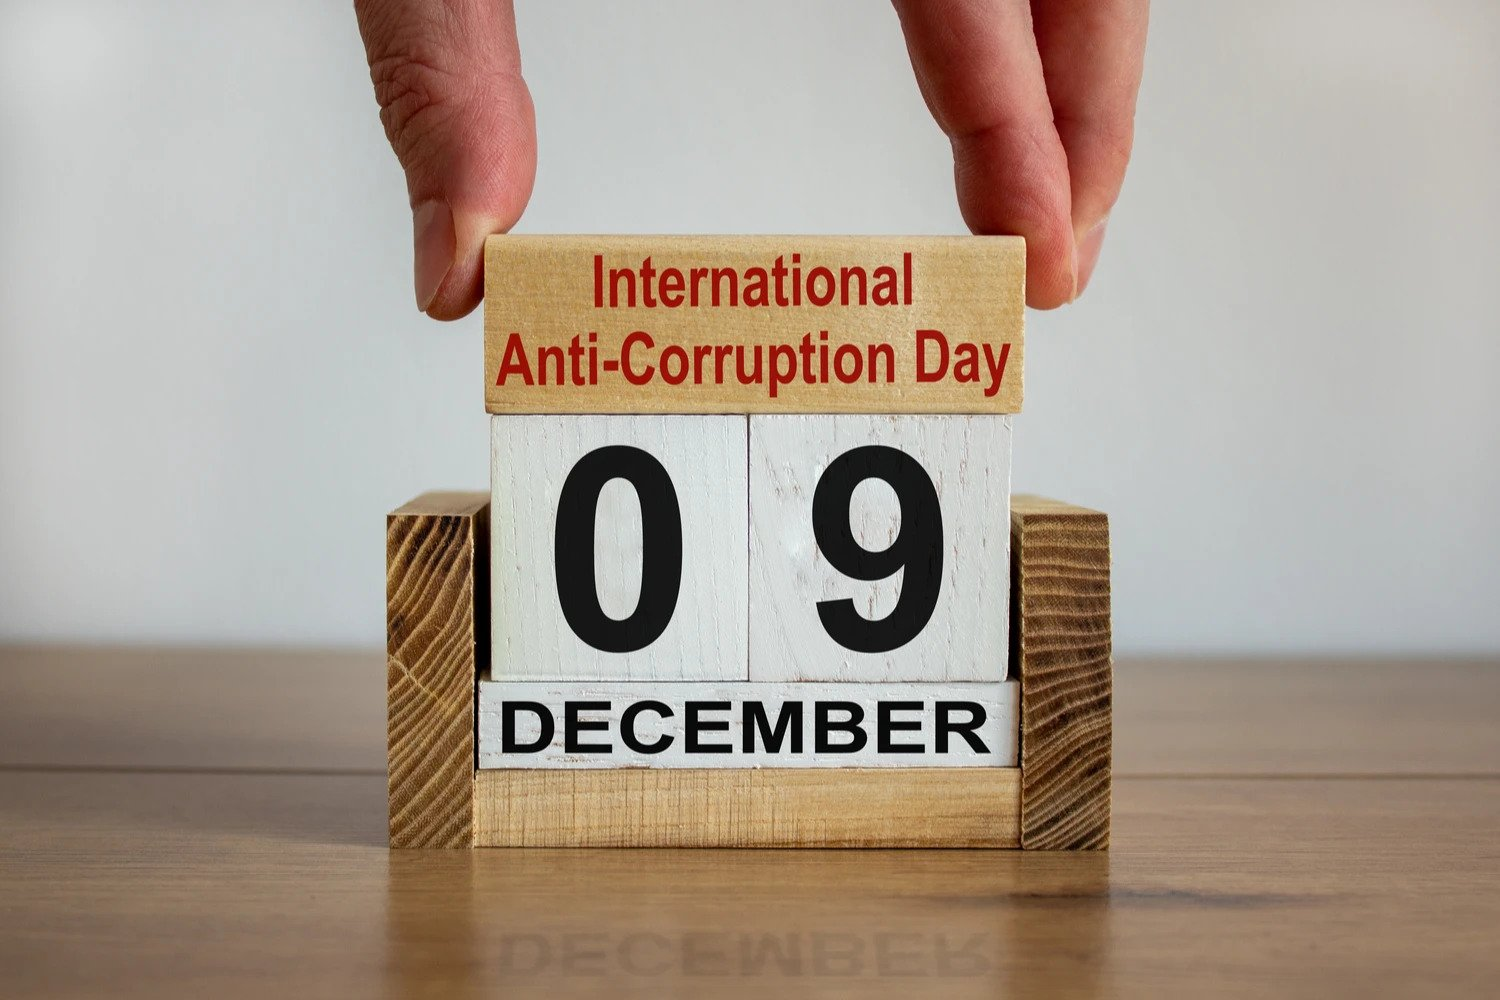 Stark Warning of Global Third-Party Bribery Riskon Anti-Corruption Day